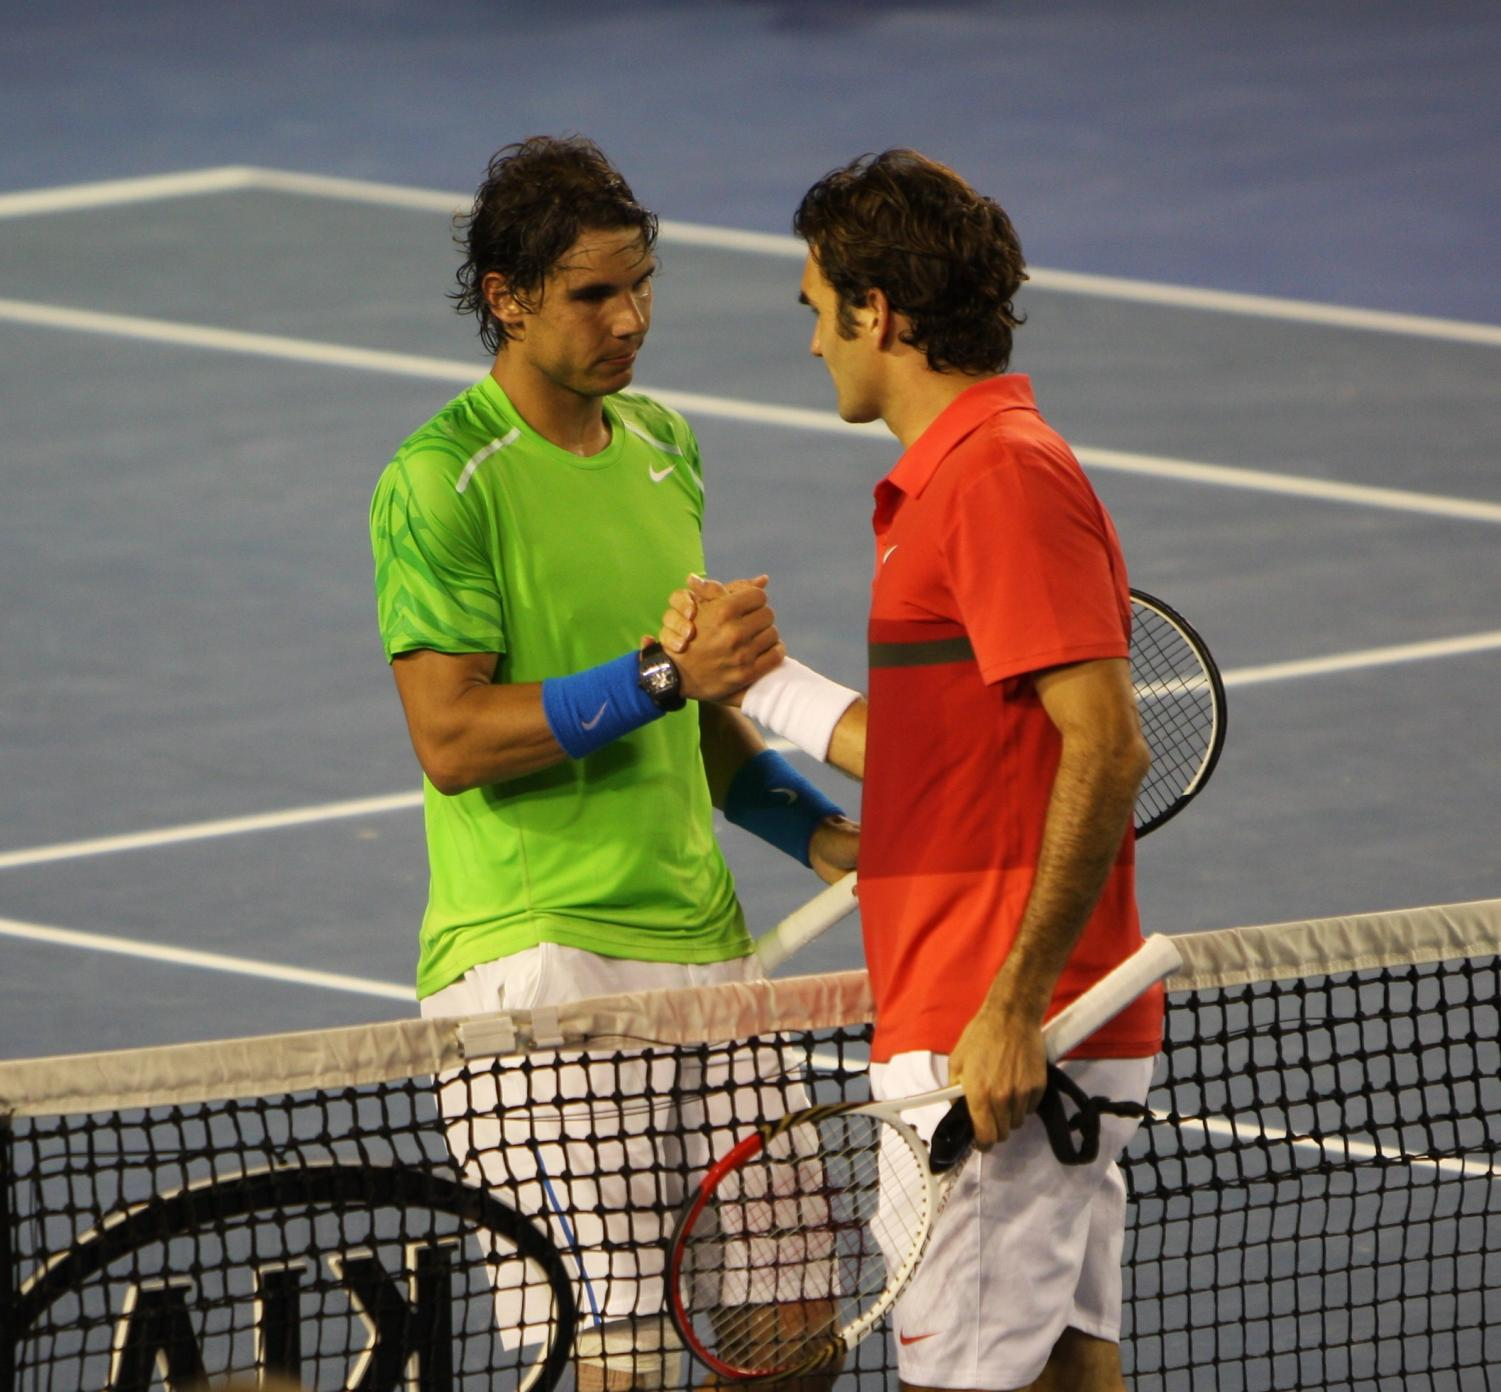 Roger Federer and Rafael Nadal at the Australian Open in 2012.